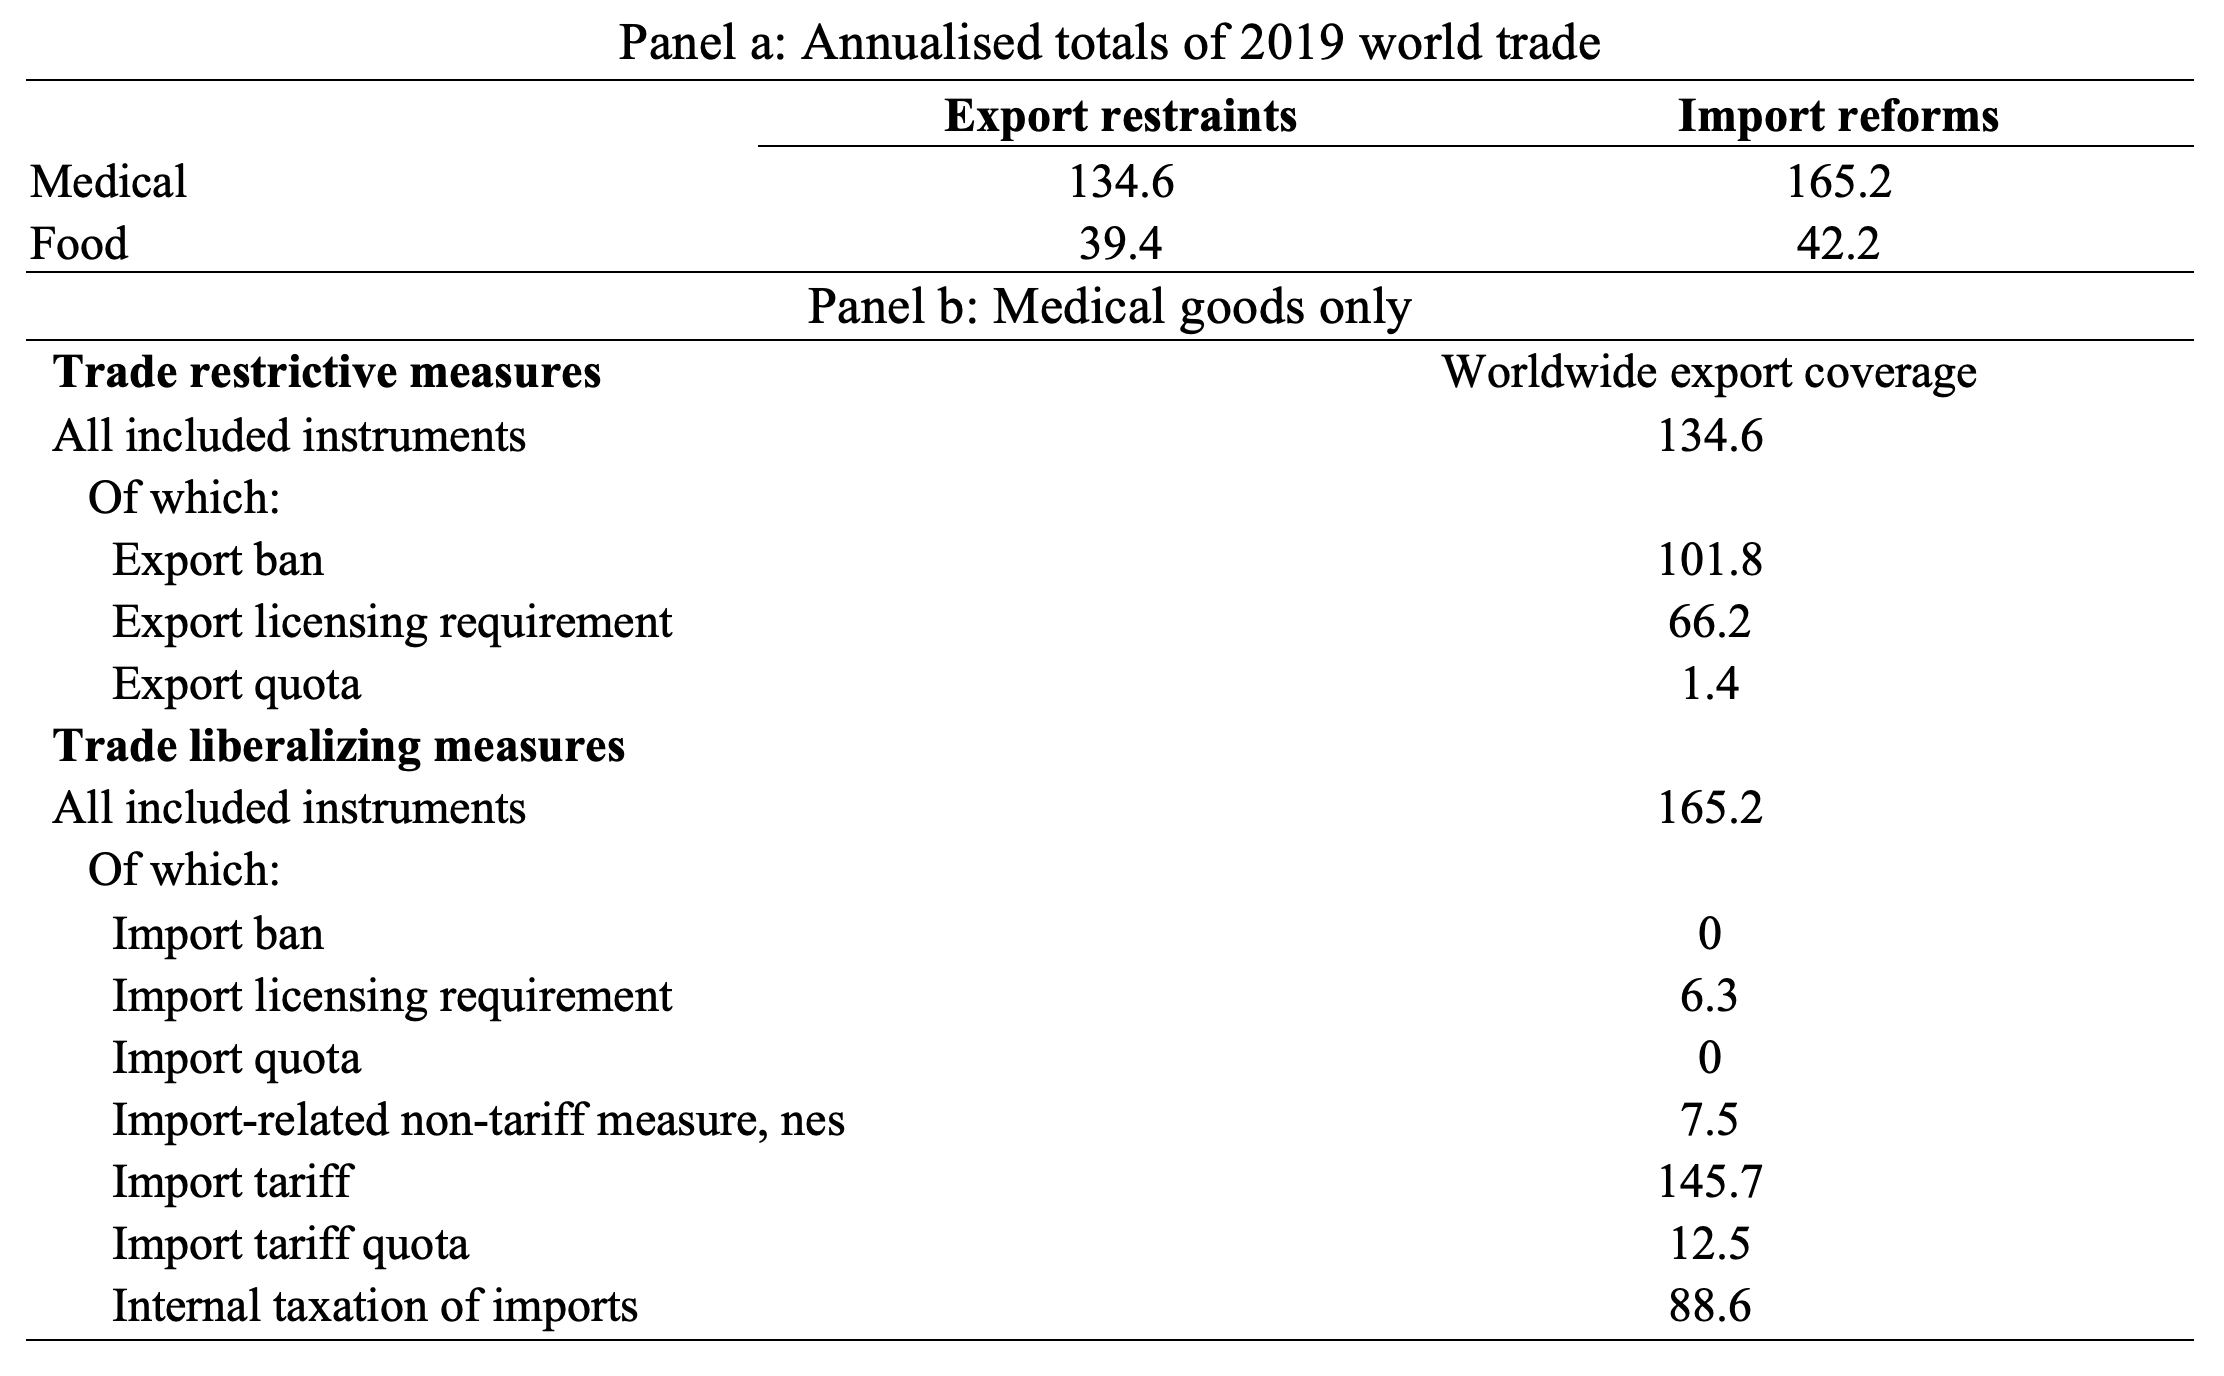 Trade policy responses to the COVID-19 pandemic: A new dataset 2